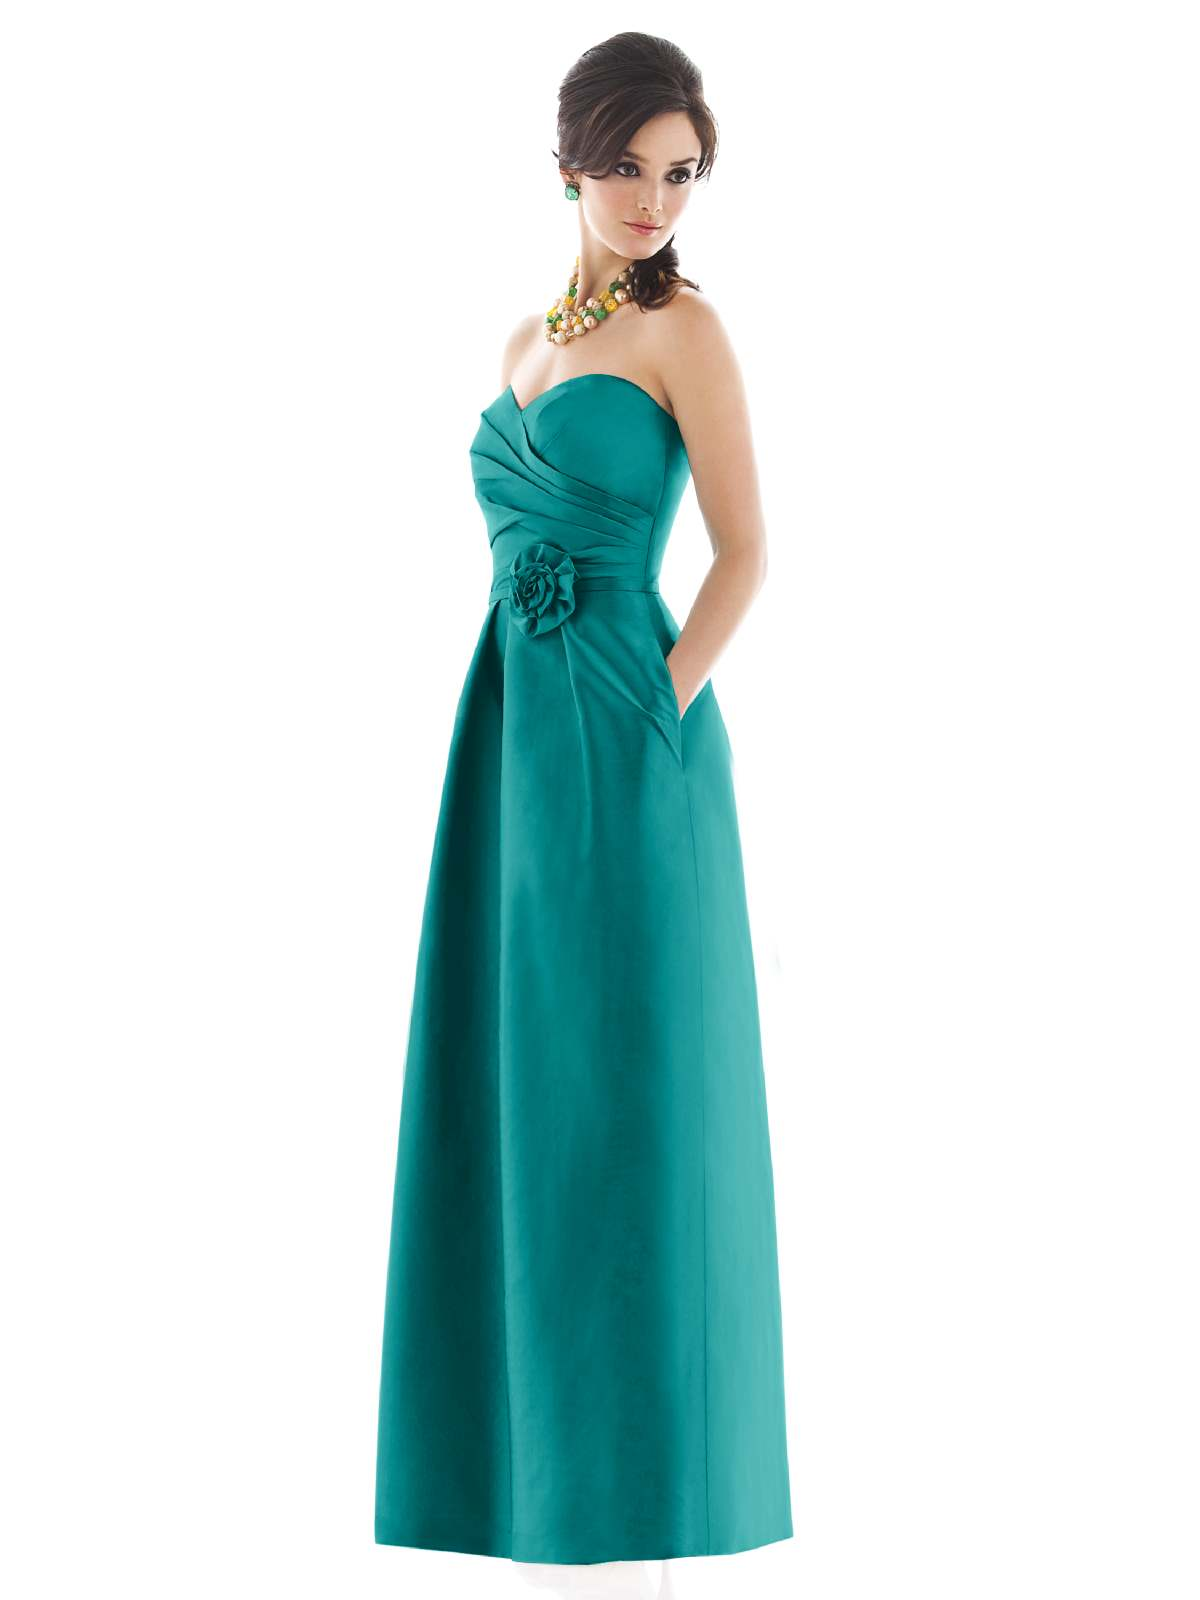 Teal A Line Strapless Sweetheart Zipper Floor Length Satin Prom Dresses With Drapes And Flowers